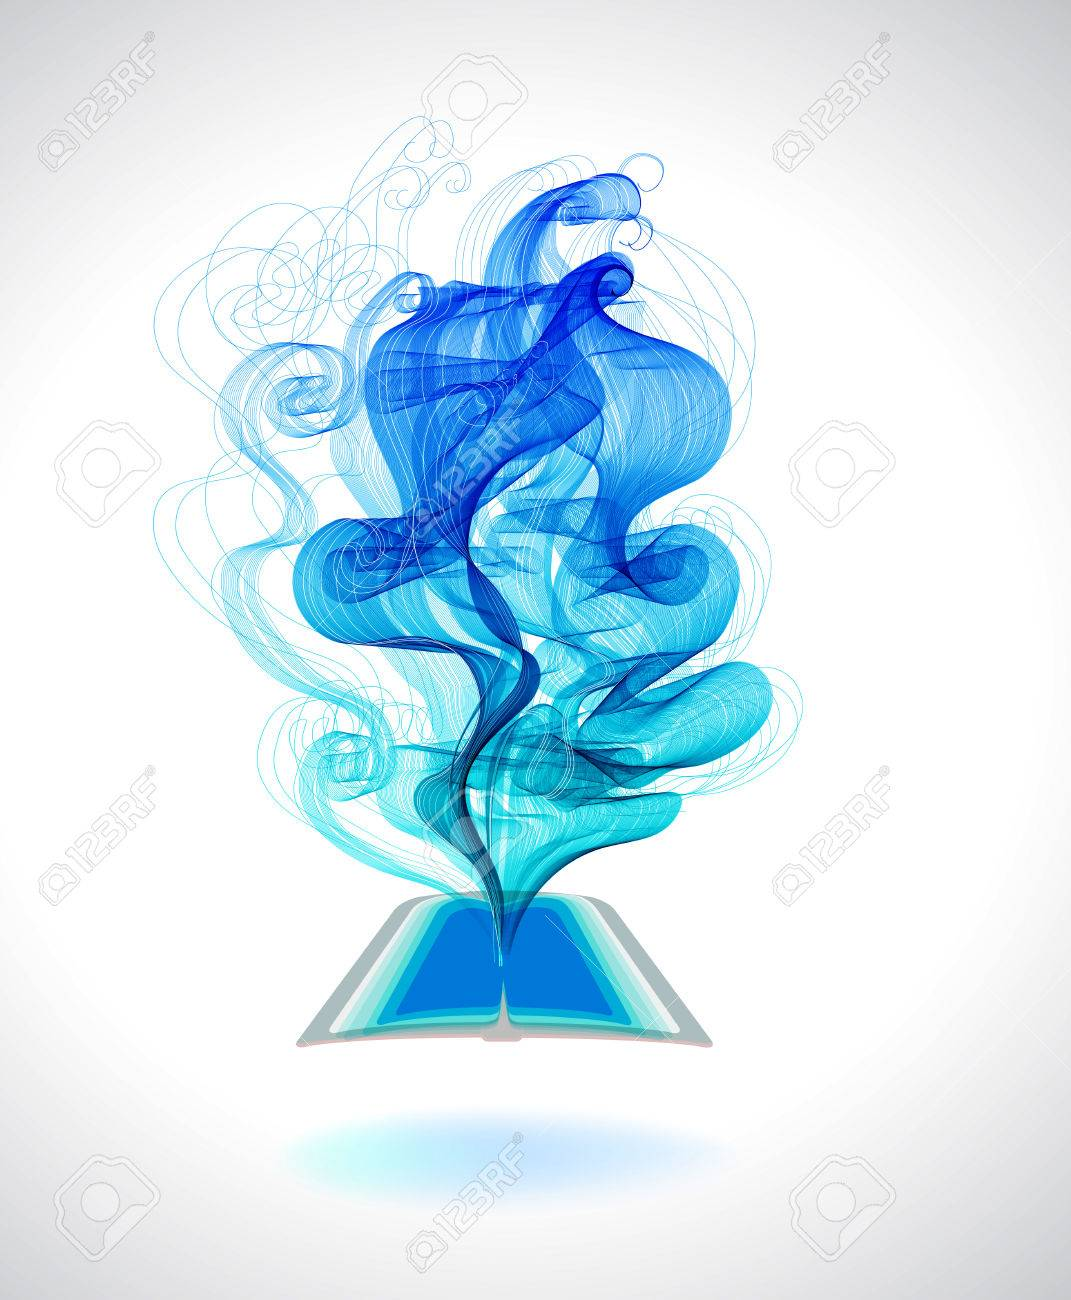 Abstract colorful background book icon and wave, education design Stock Vector - 27270886